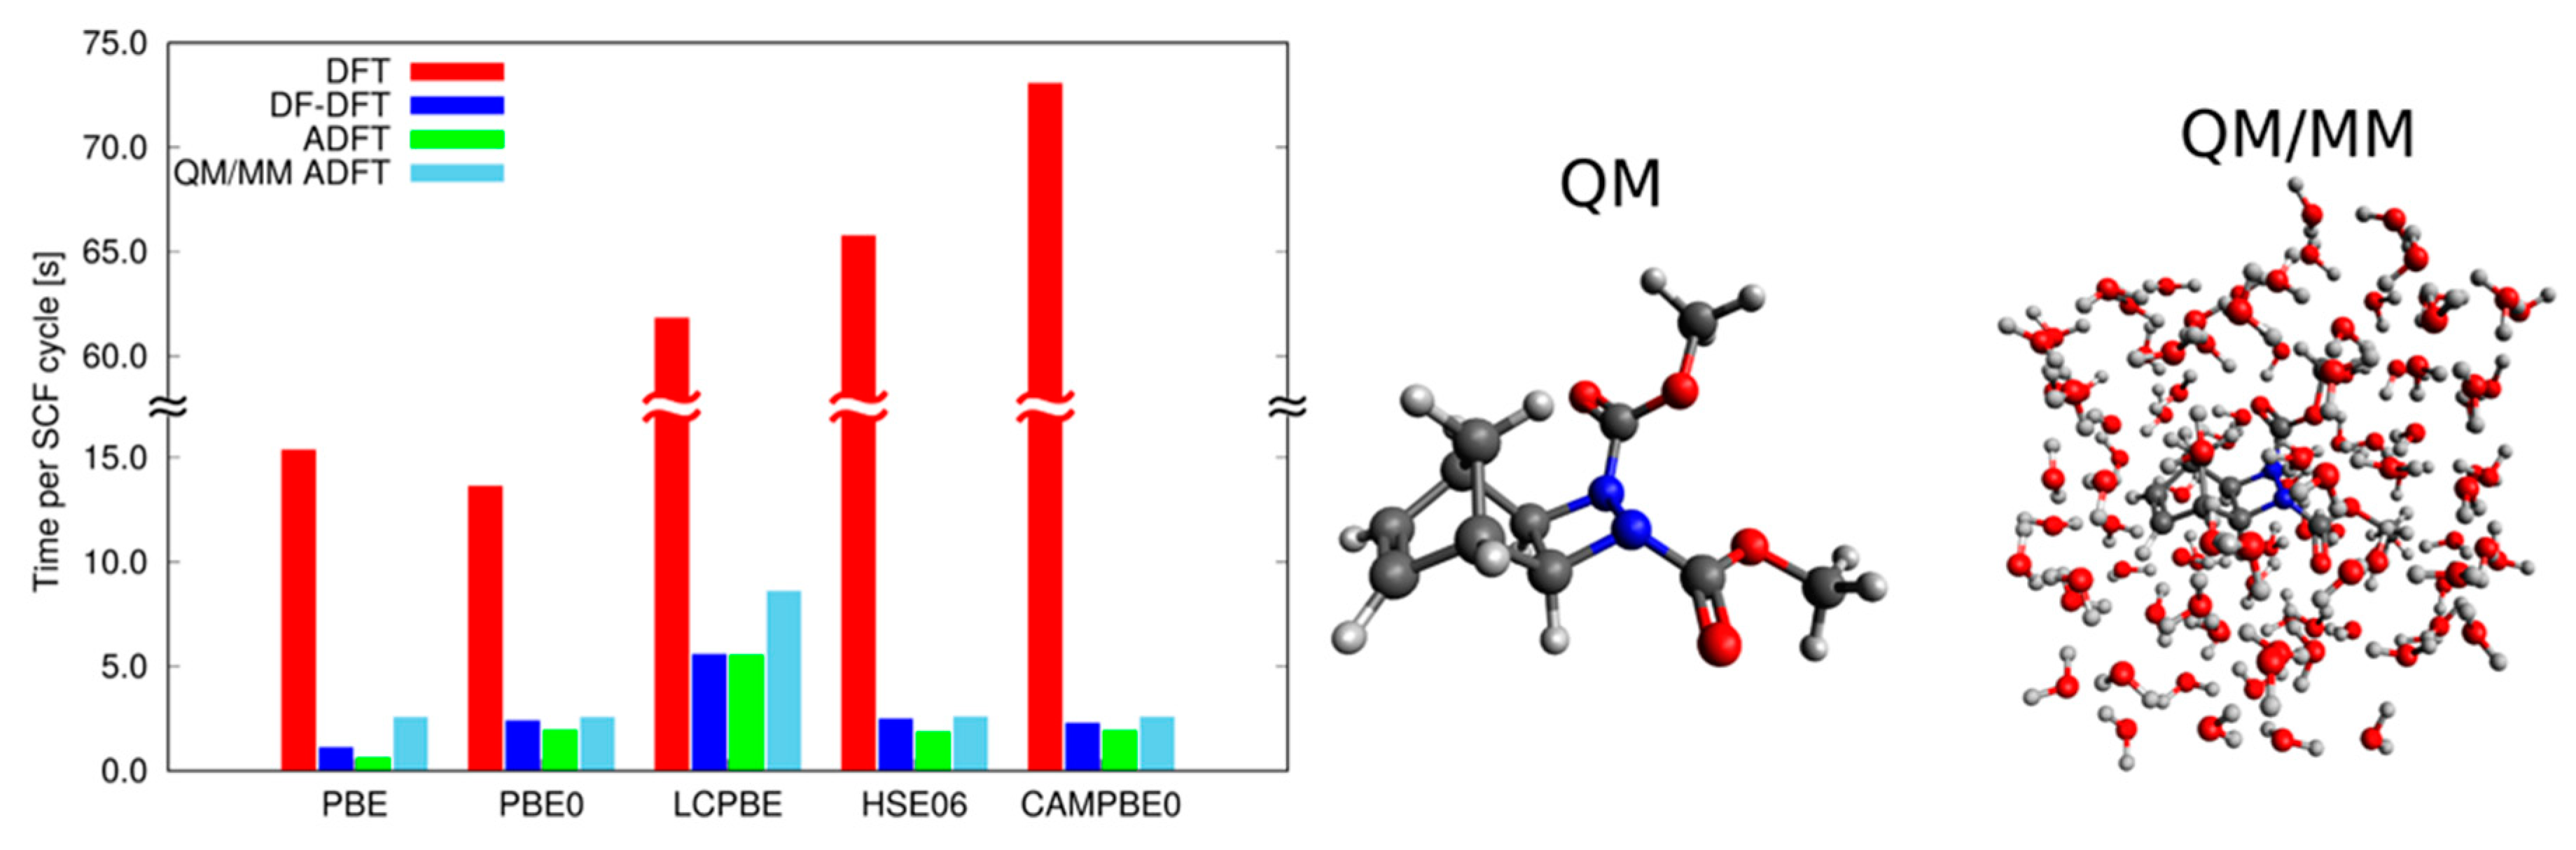 Molecules | Free Full-Text | Molecular Simulations with in